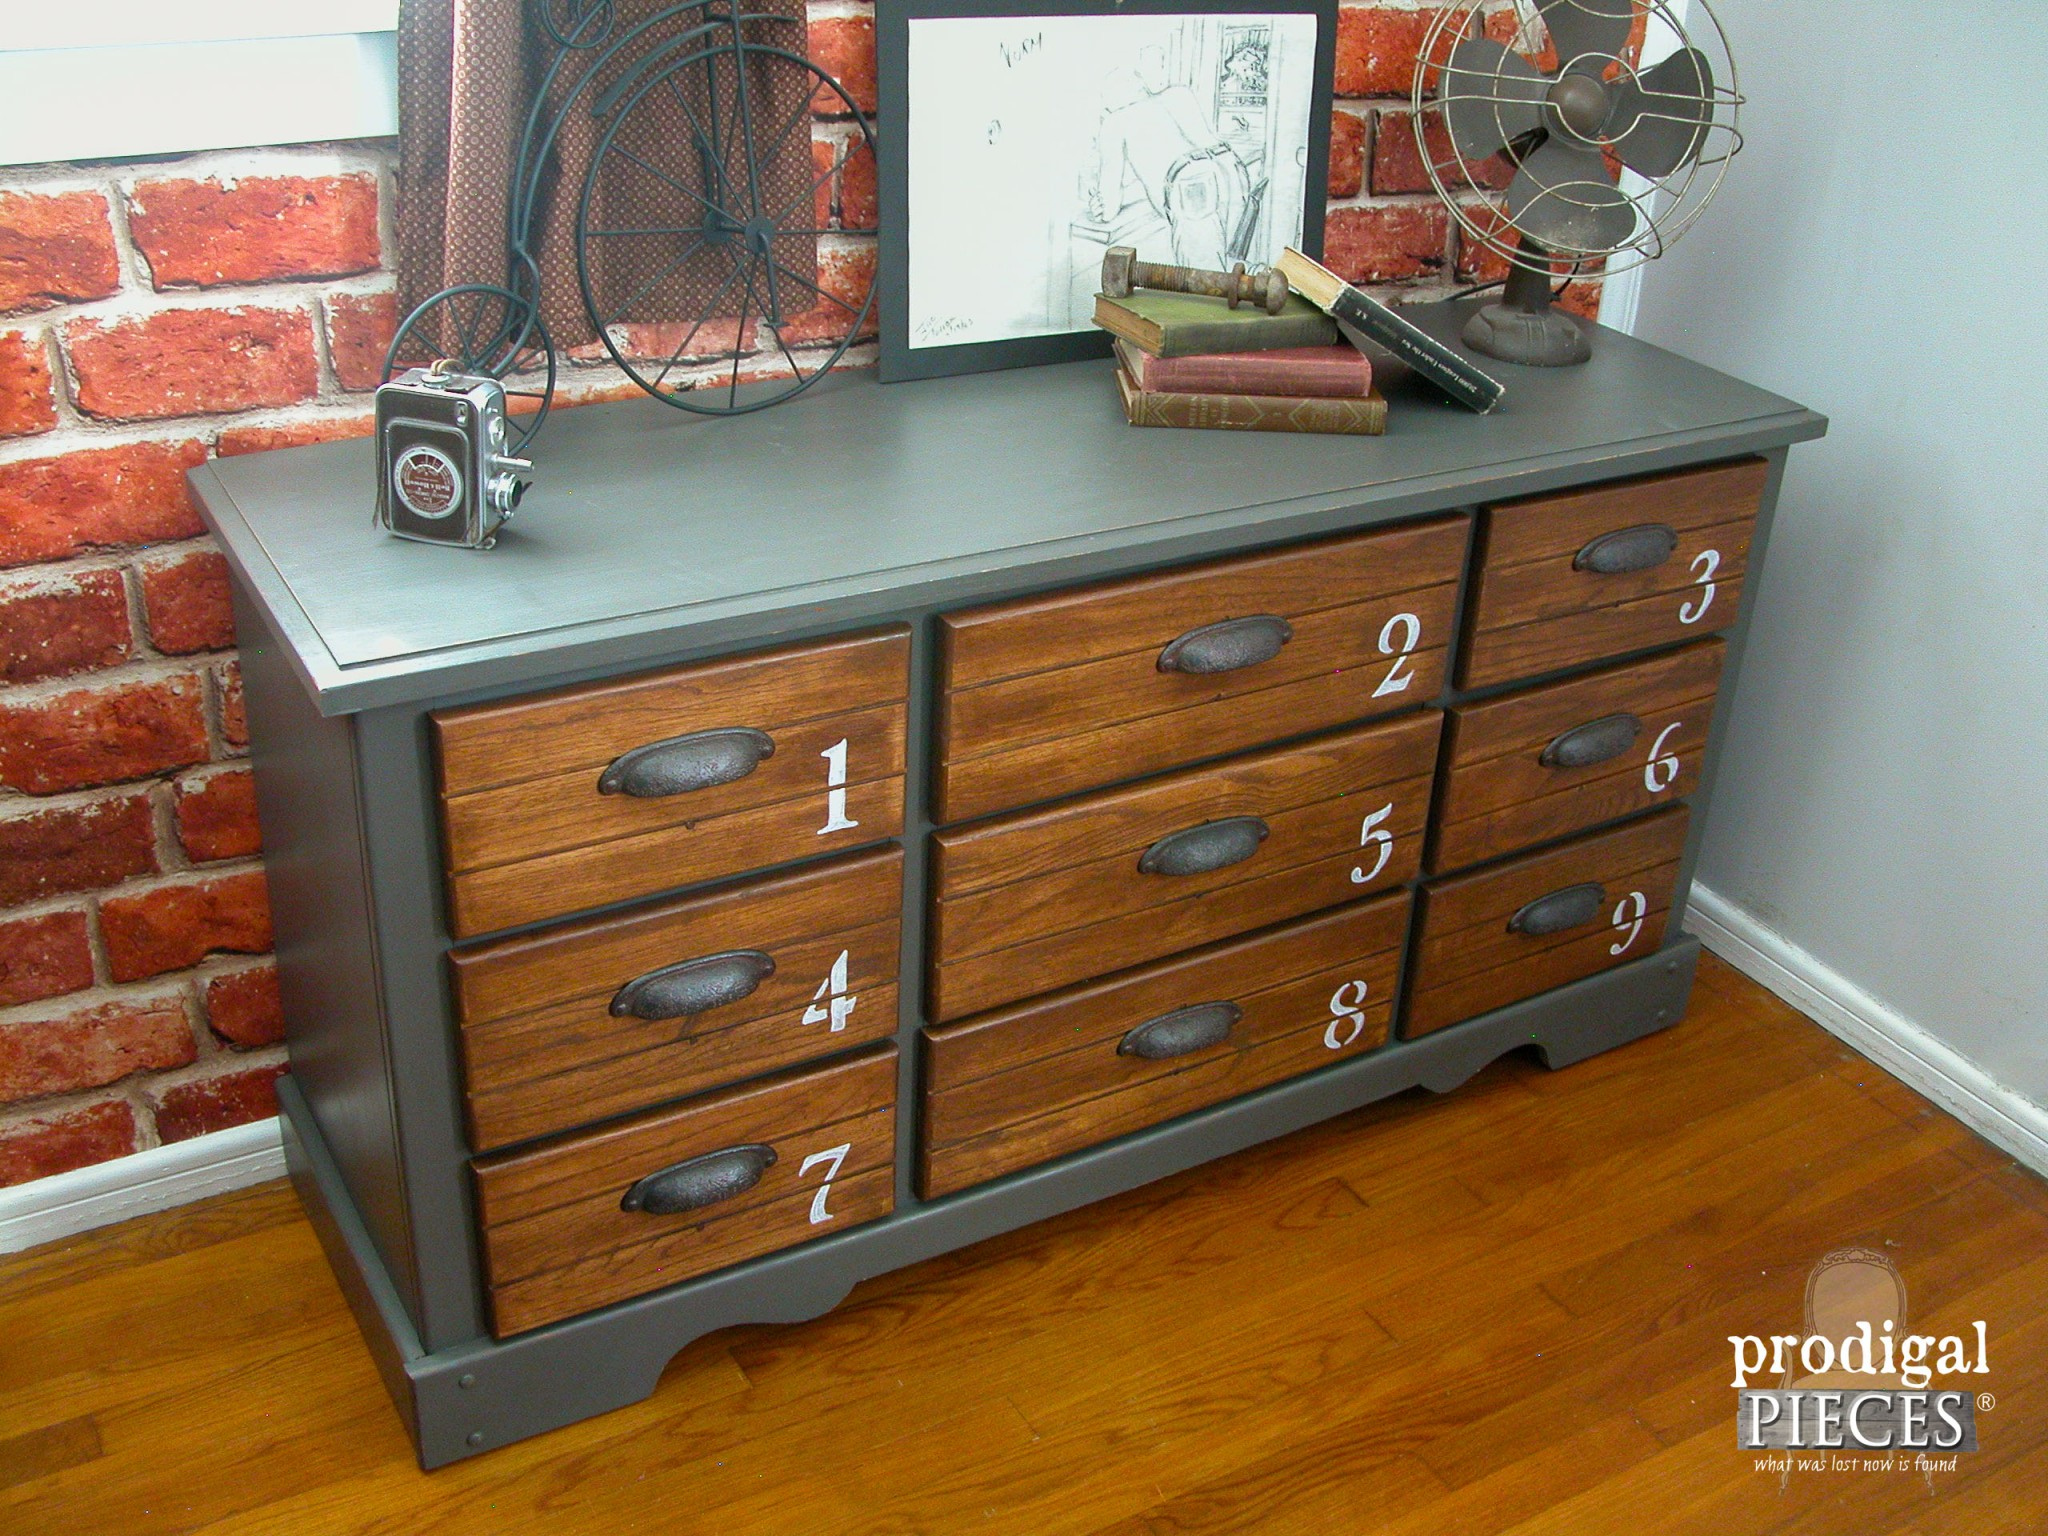 Left Side View of Industrial Vintage Dresser by Prodigal Pieces | www.prodigalpieces.com